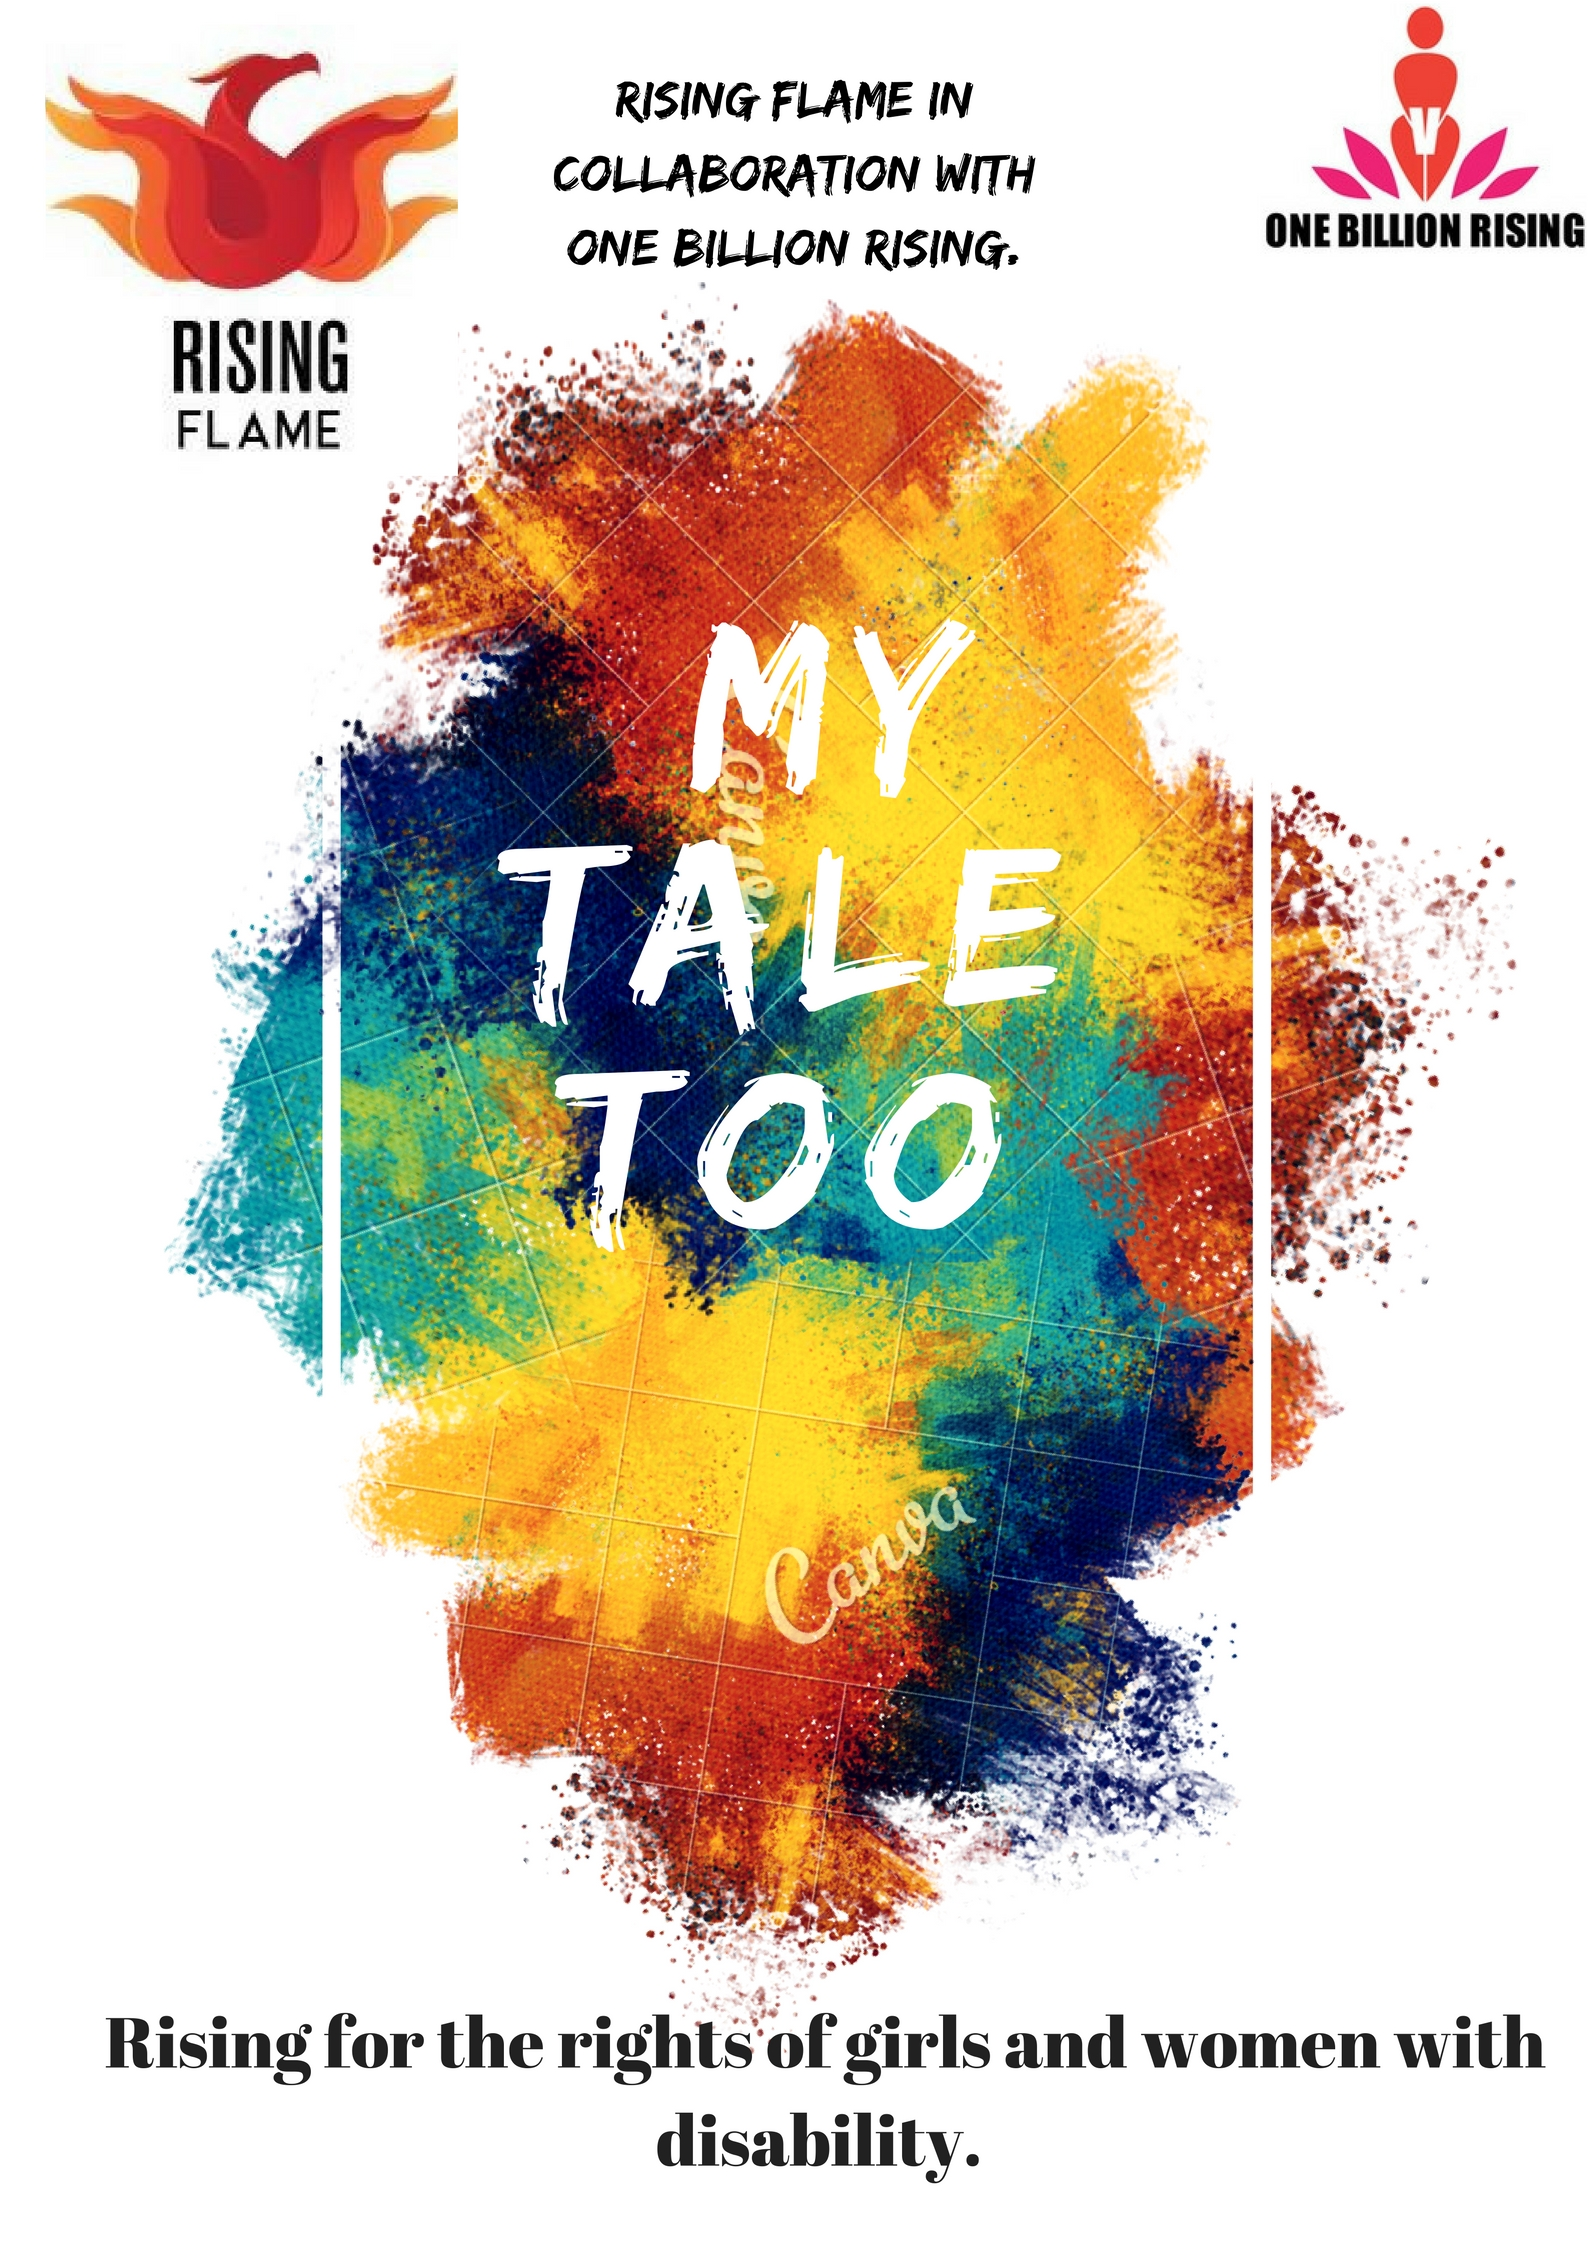 This is the poster for Rising Flame's workshop series: My Tale Too. The Rising flame logo is on the left and the One Billion Rising logo is on the right. In the centre there is a mix of blue, yellow and red on which My Tale Too is written in white. And at the bottom it is written, rising for the rights of girls and women with disabilities.